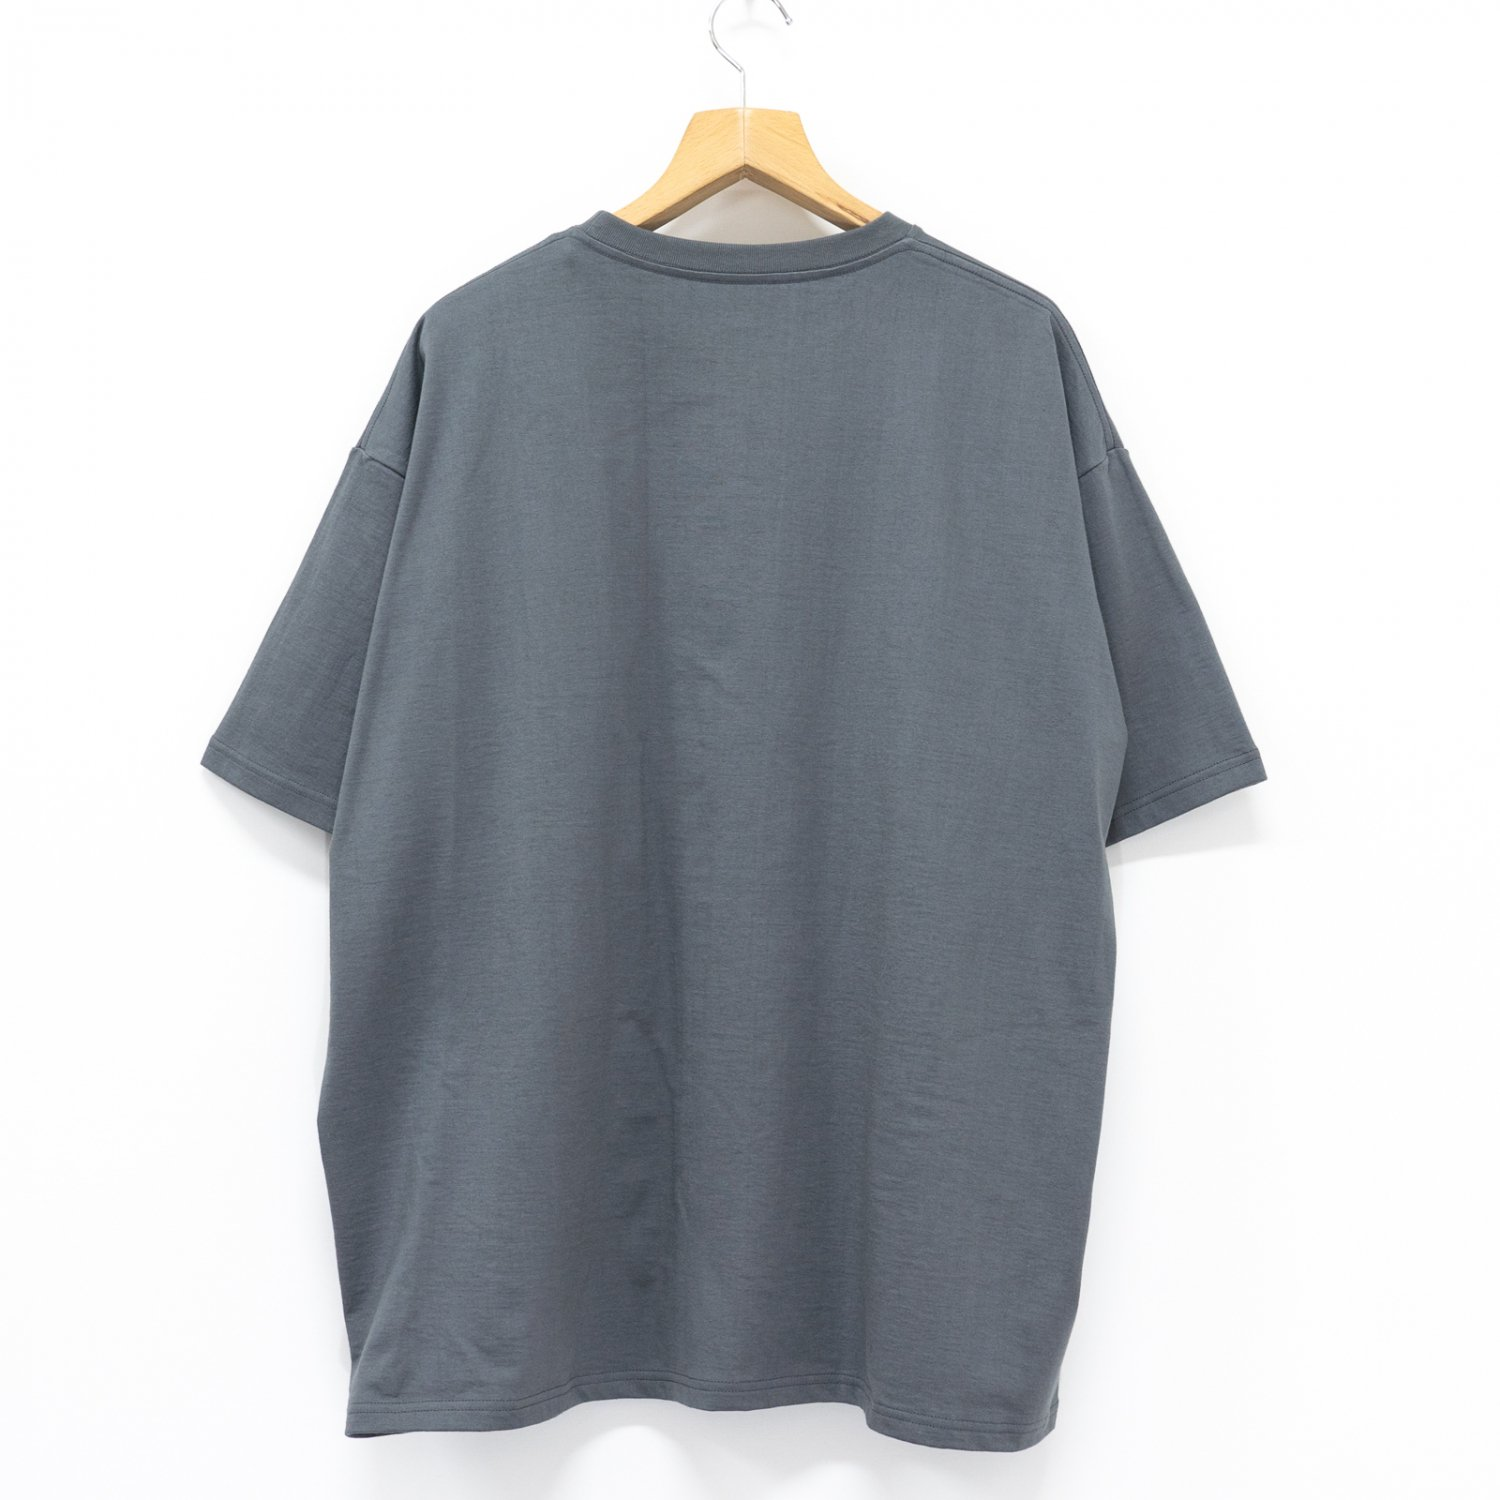 Graphpaper * S/S Oversized Tee * Gray